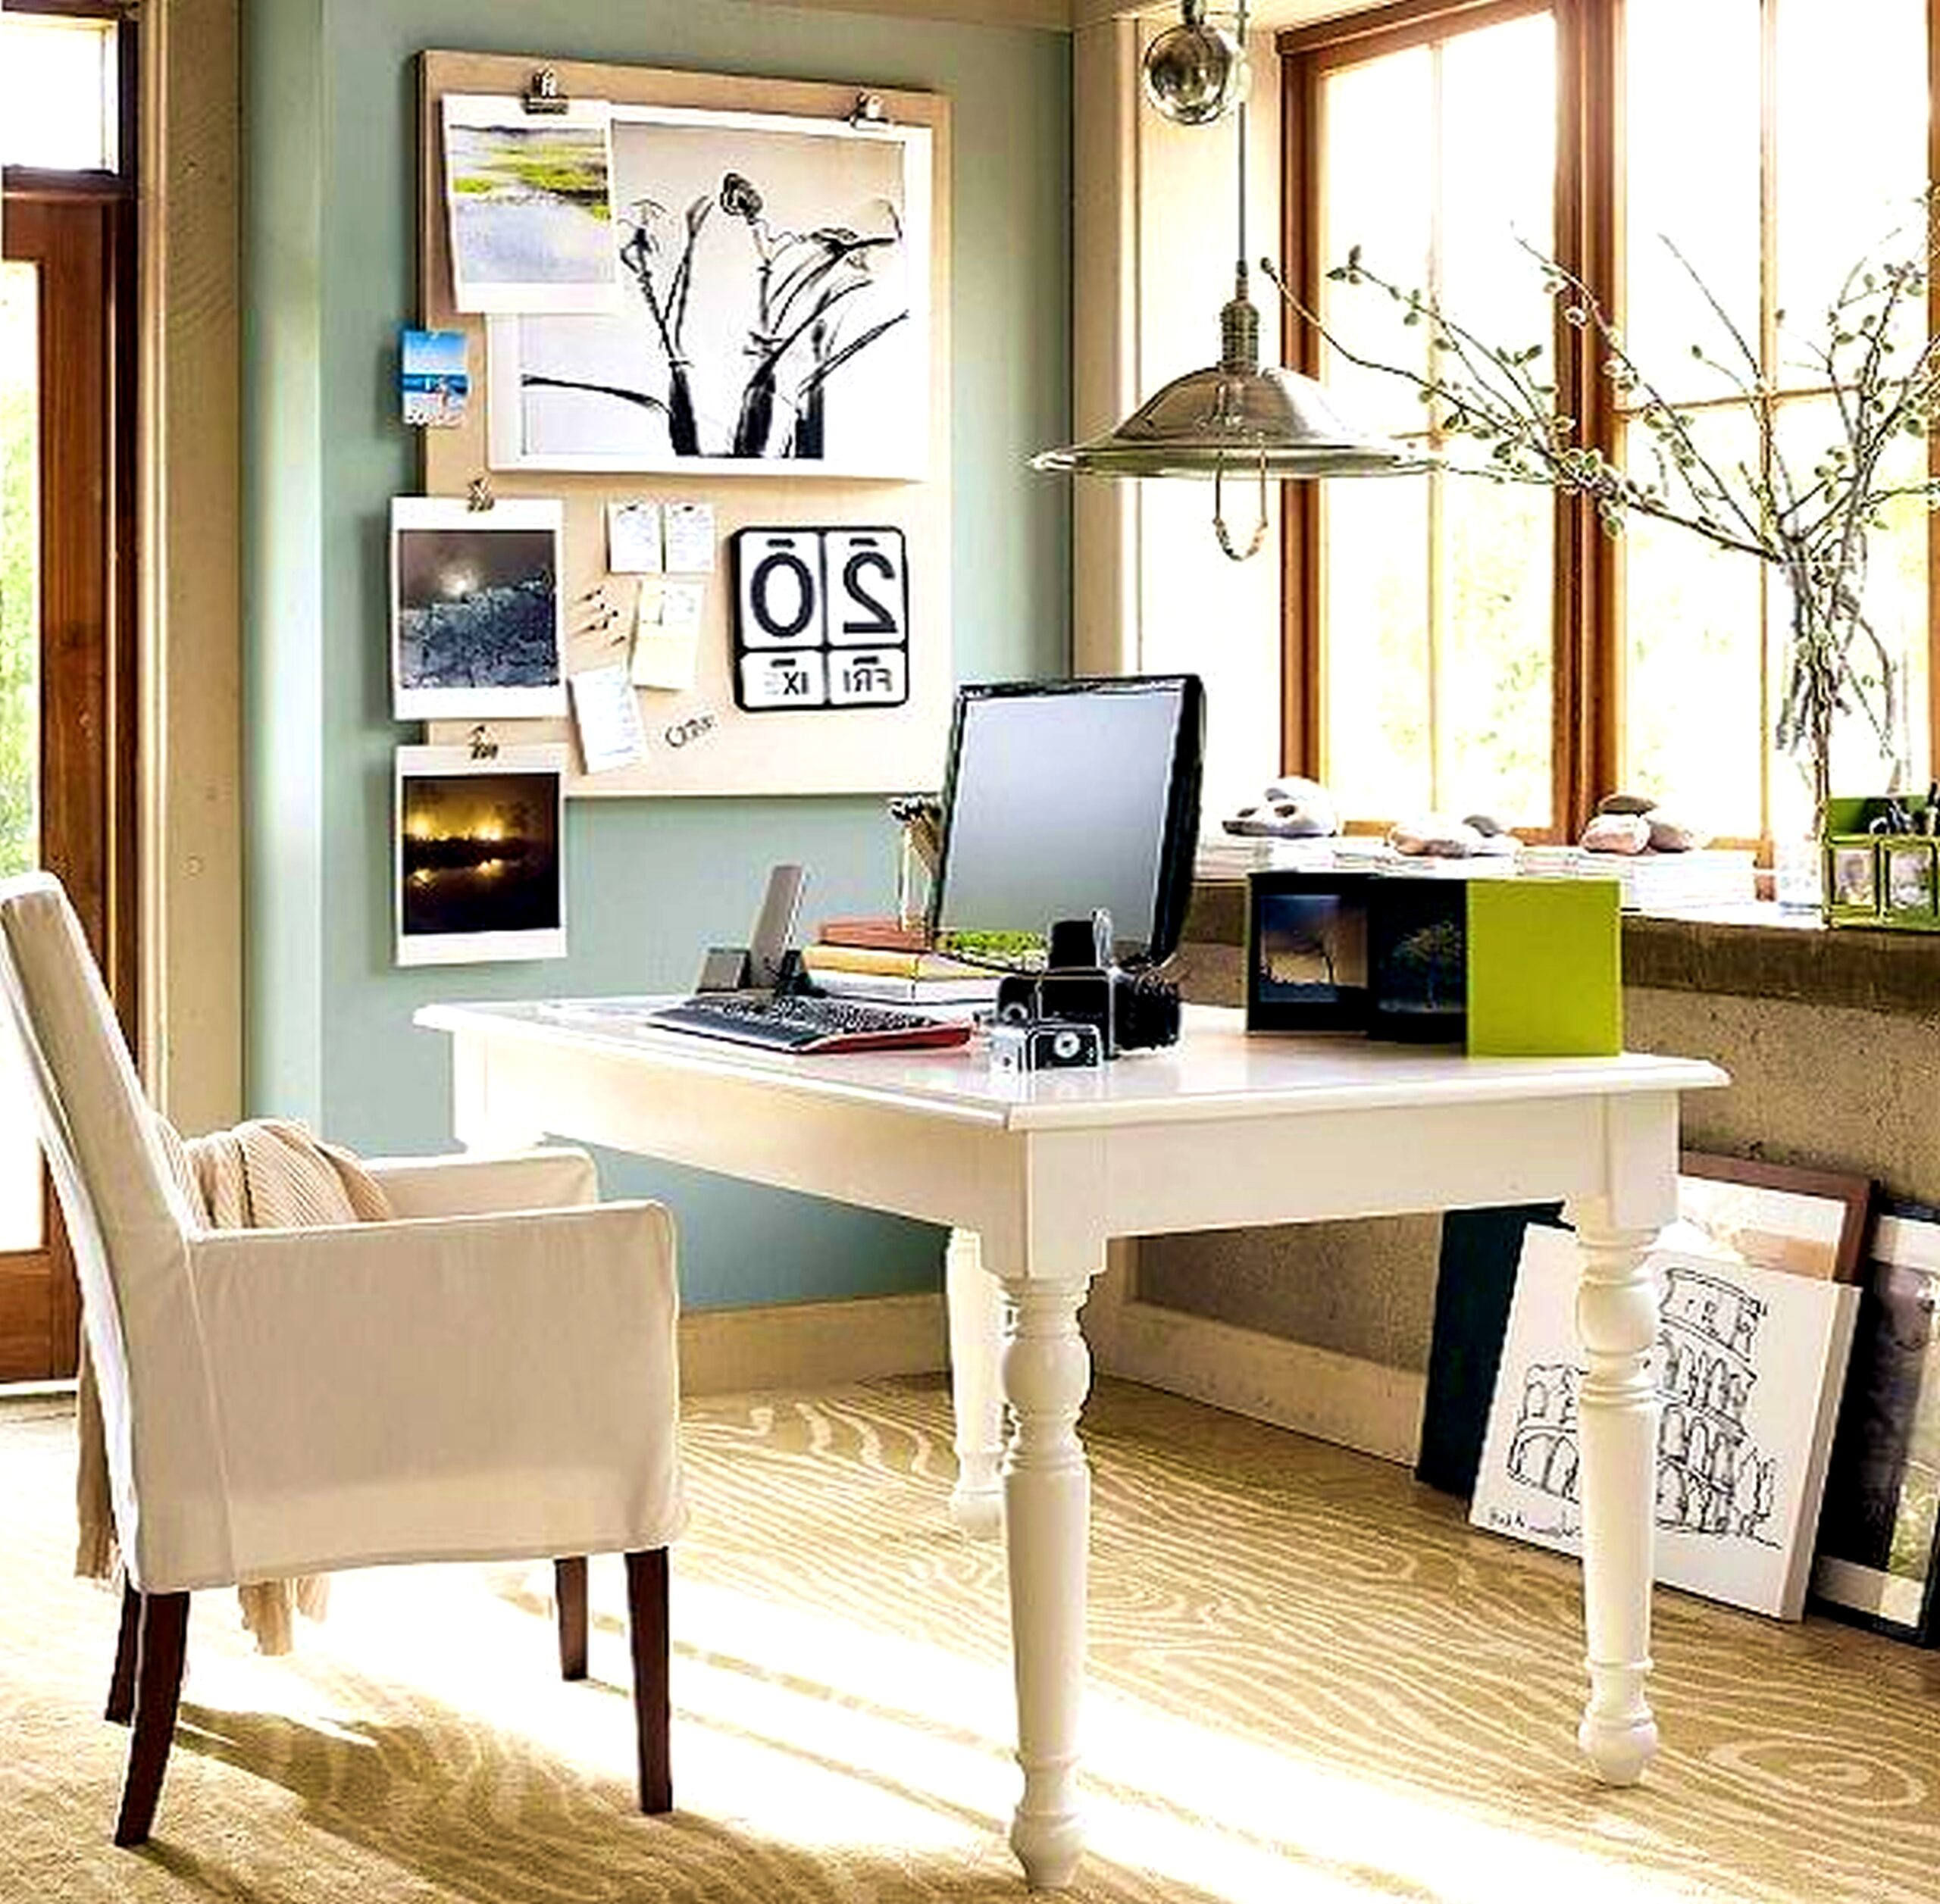 Home-Office-WBII